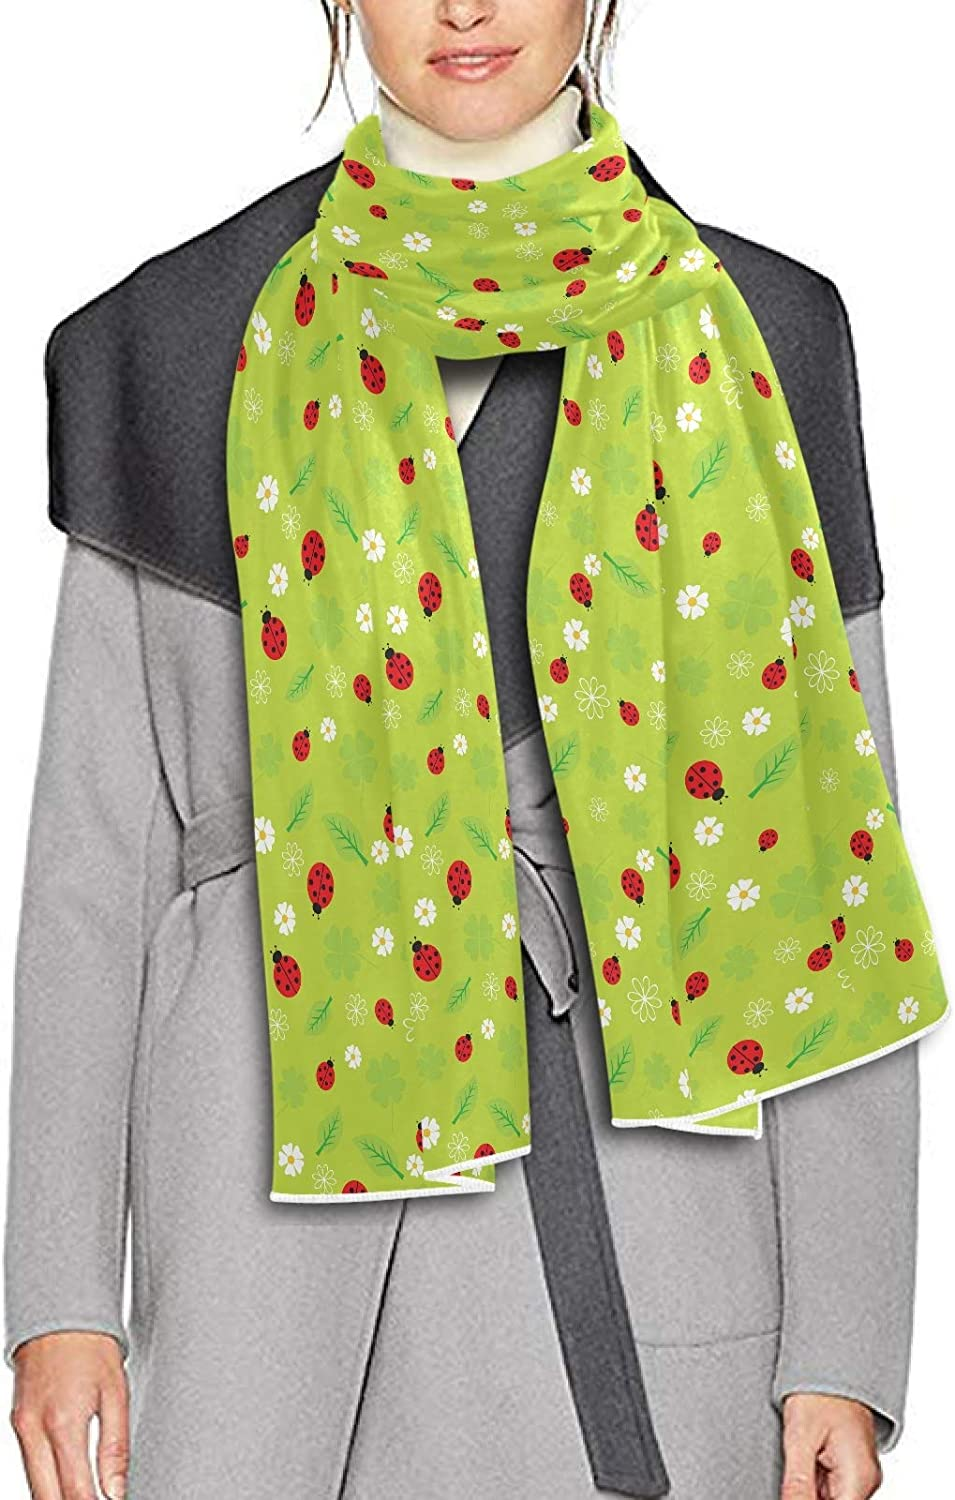 Scarf for Women and Men Beetles Ladybugs Scarab Shawls Blanket Scarf wraps Warm soft Winter Long Scarves Lightweight